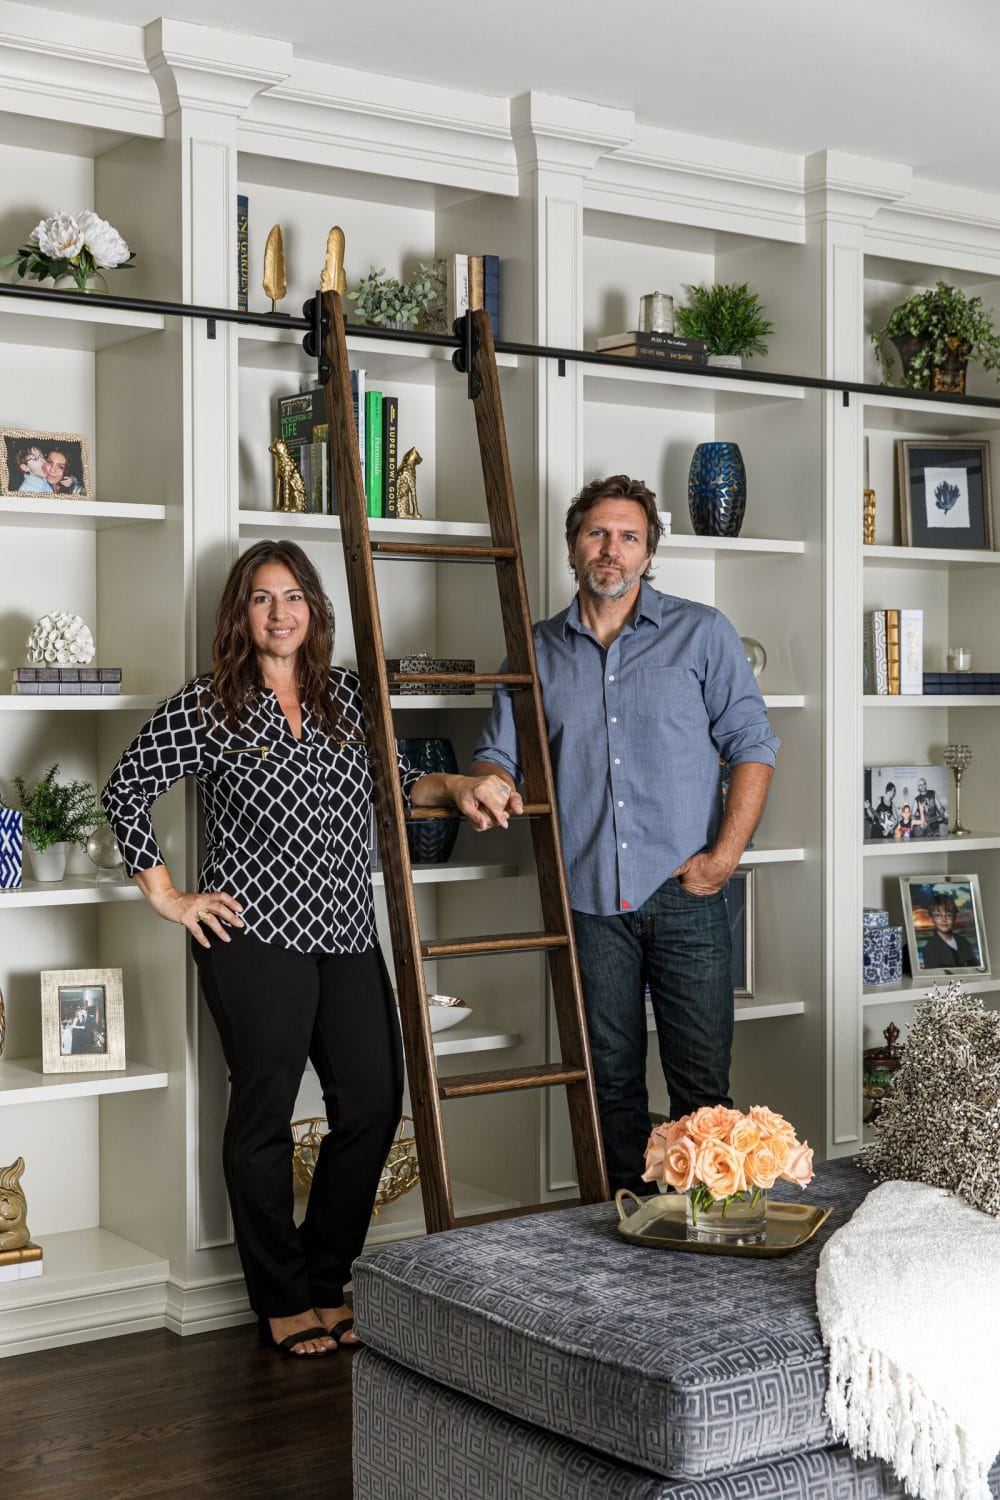 Evenflow Interiors - Lisa and Rick Cressman